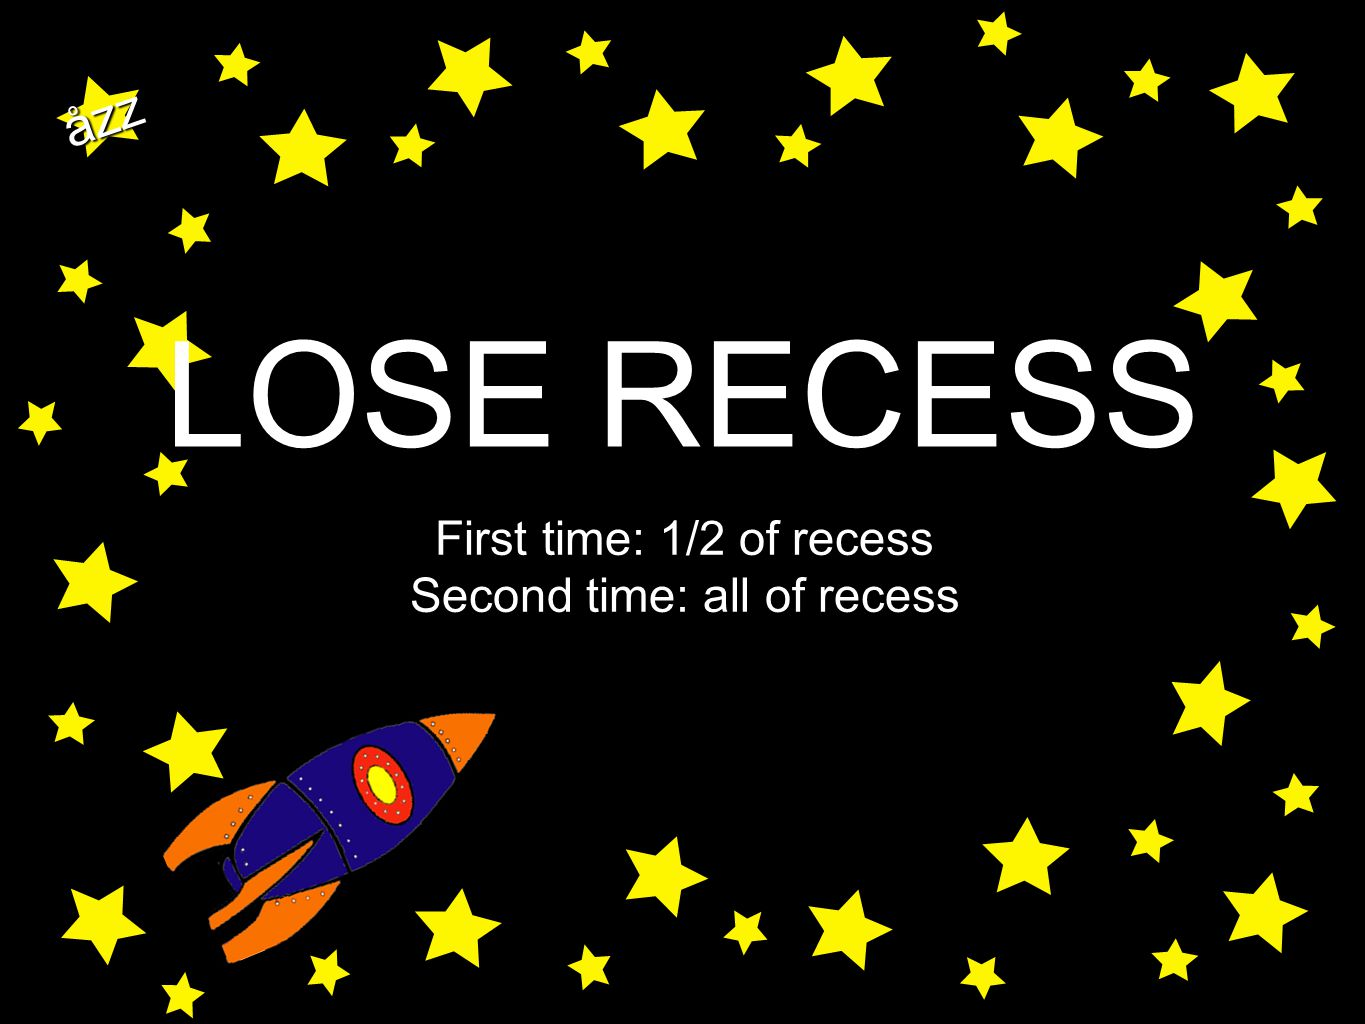 åzz LOSE RECESS First time: 1/2 of recess Second time: all of recess